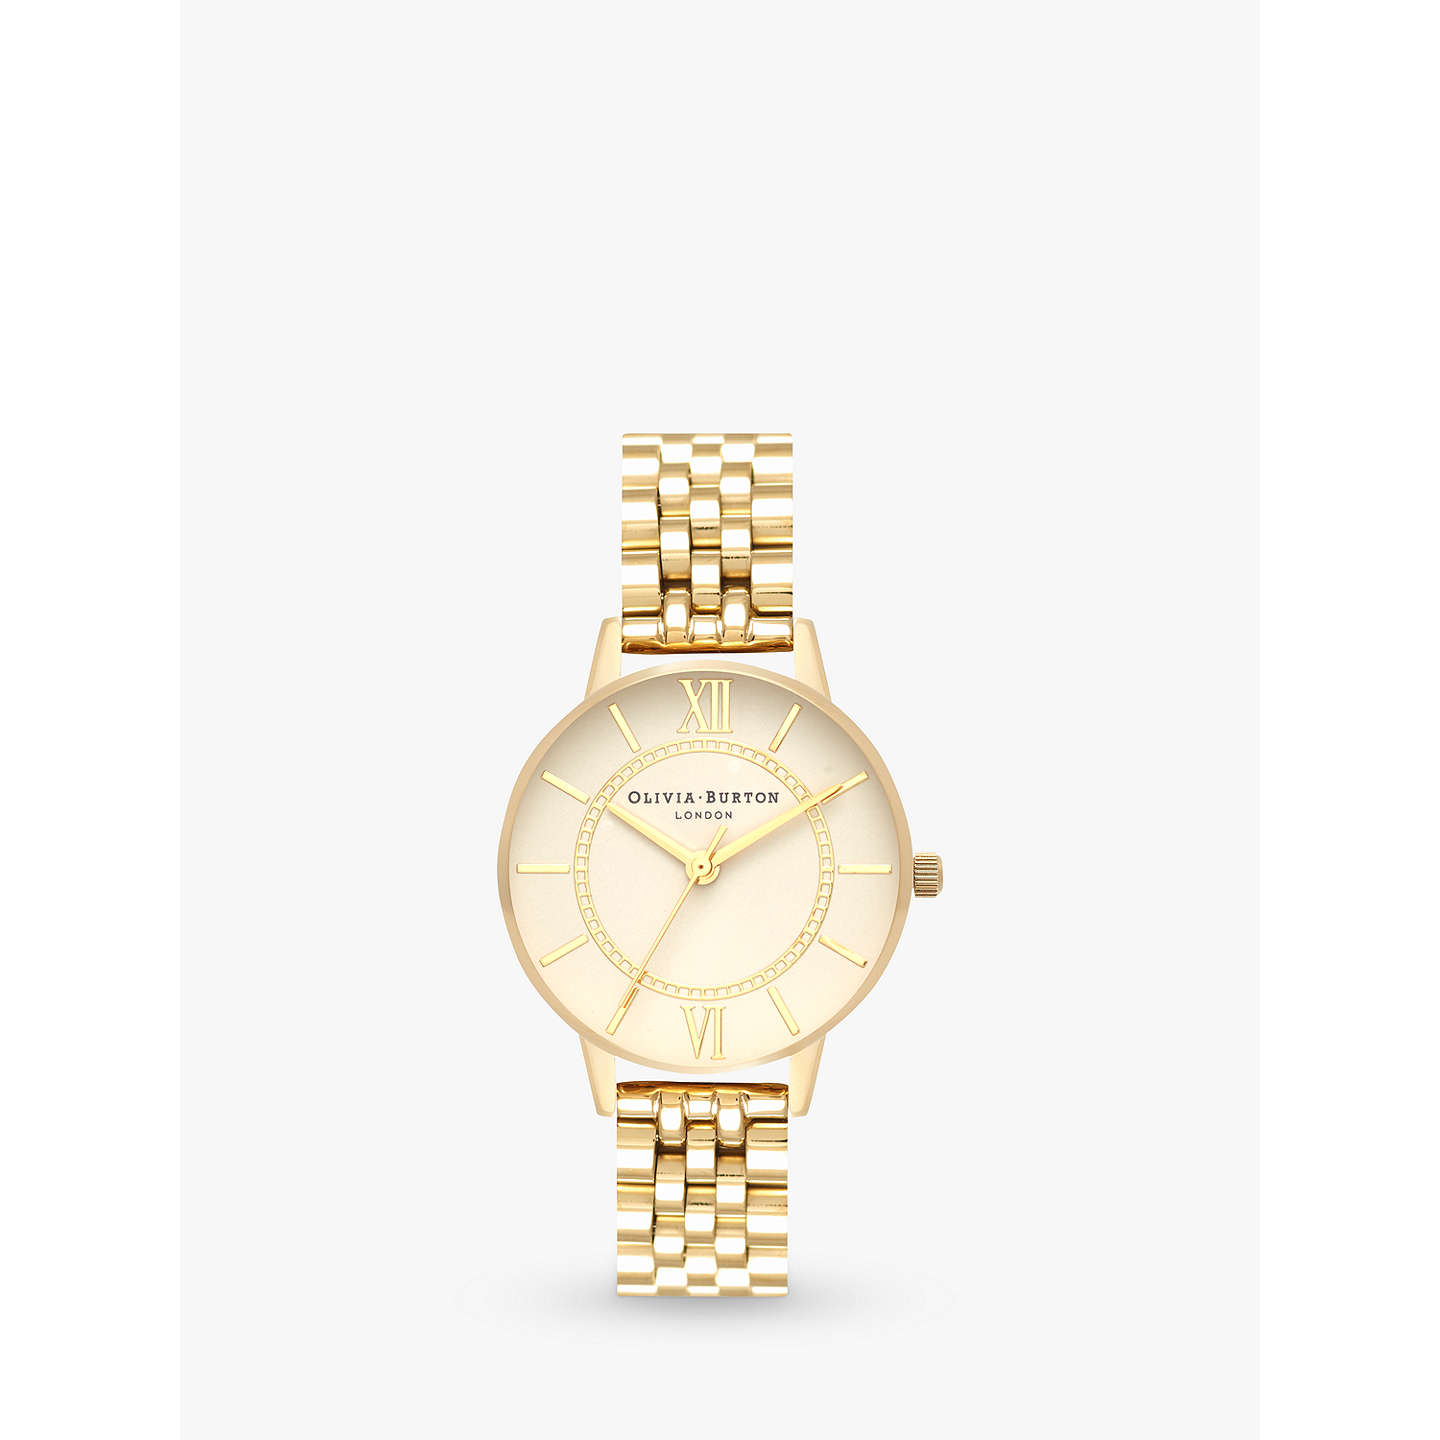 Olivia Burton Ob16 Wd69 Women's Wonderland Stainless Steel Strap Round Watch, Gold by Olivia Burton